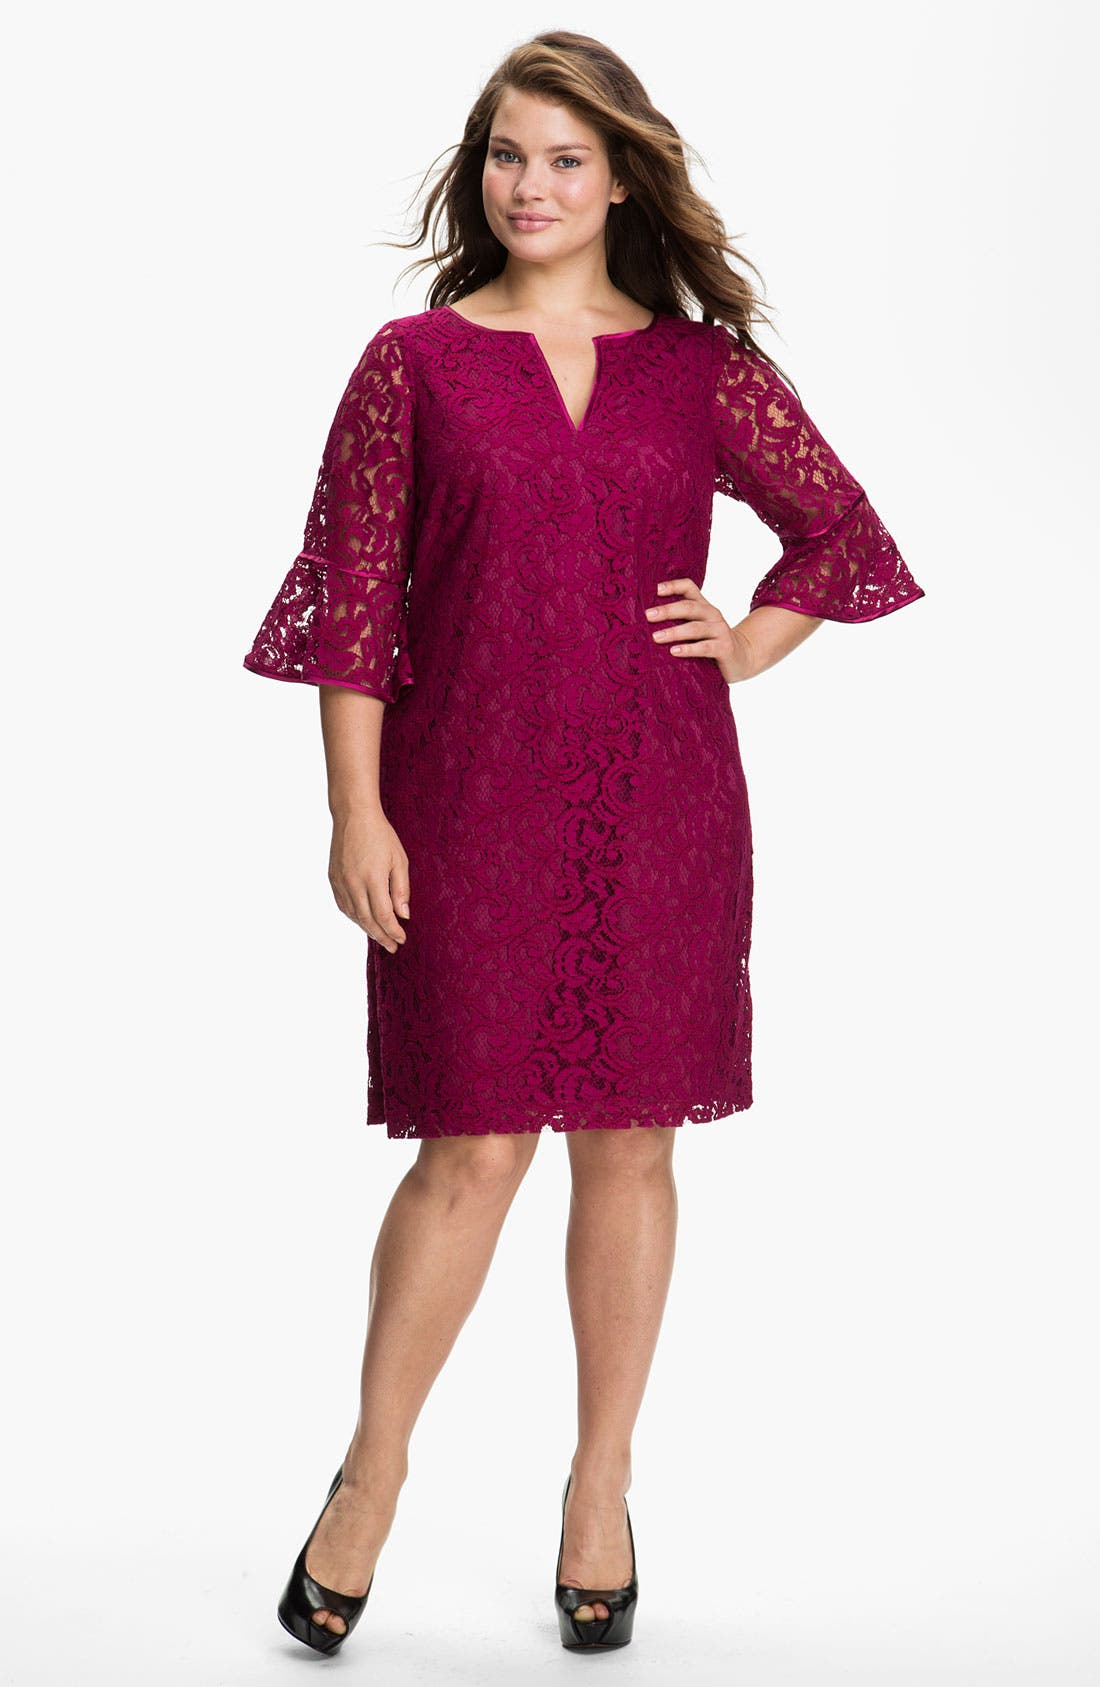 Alternate Image 1 Selected - Adrianna Papell Satin Trim Lace Shift Dress (Plus)